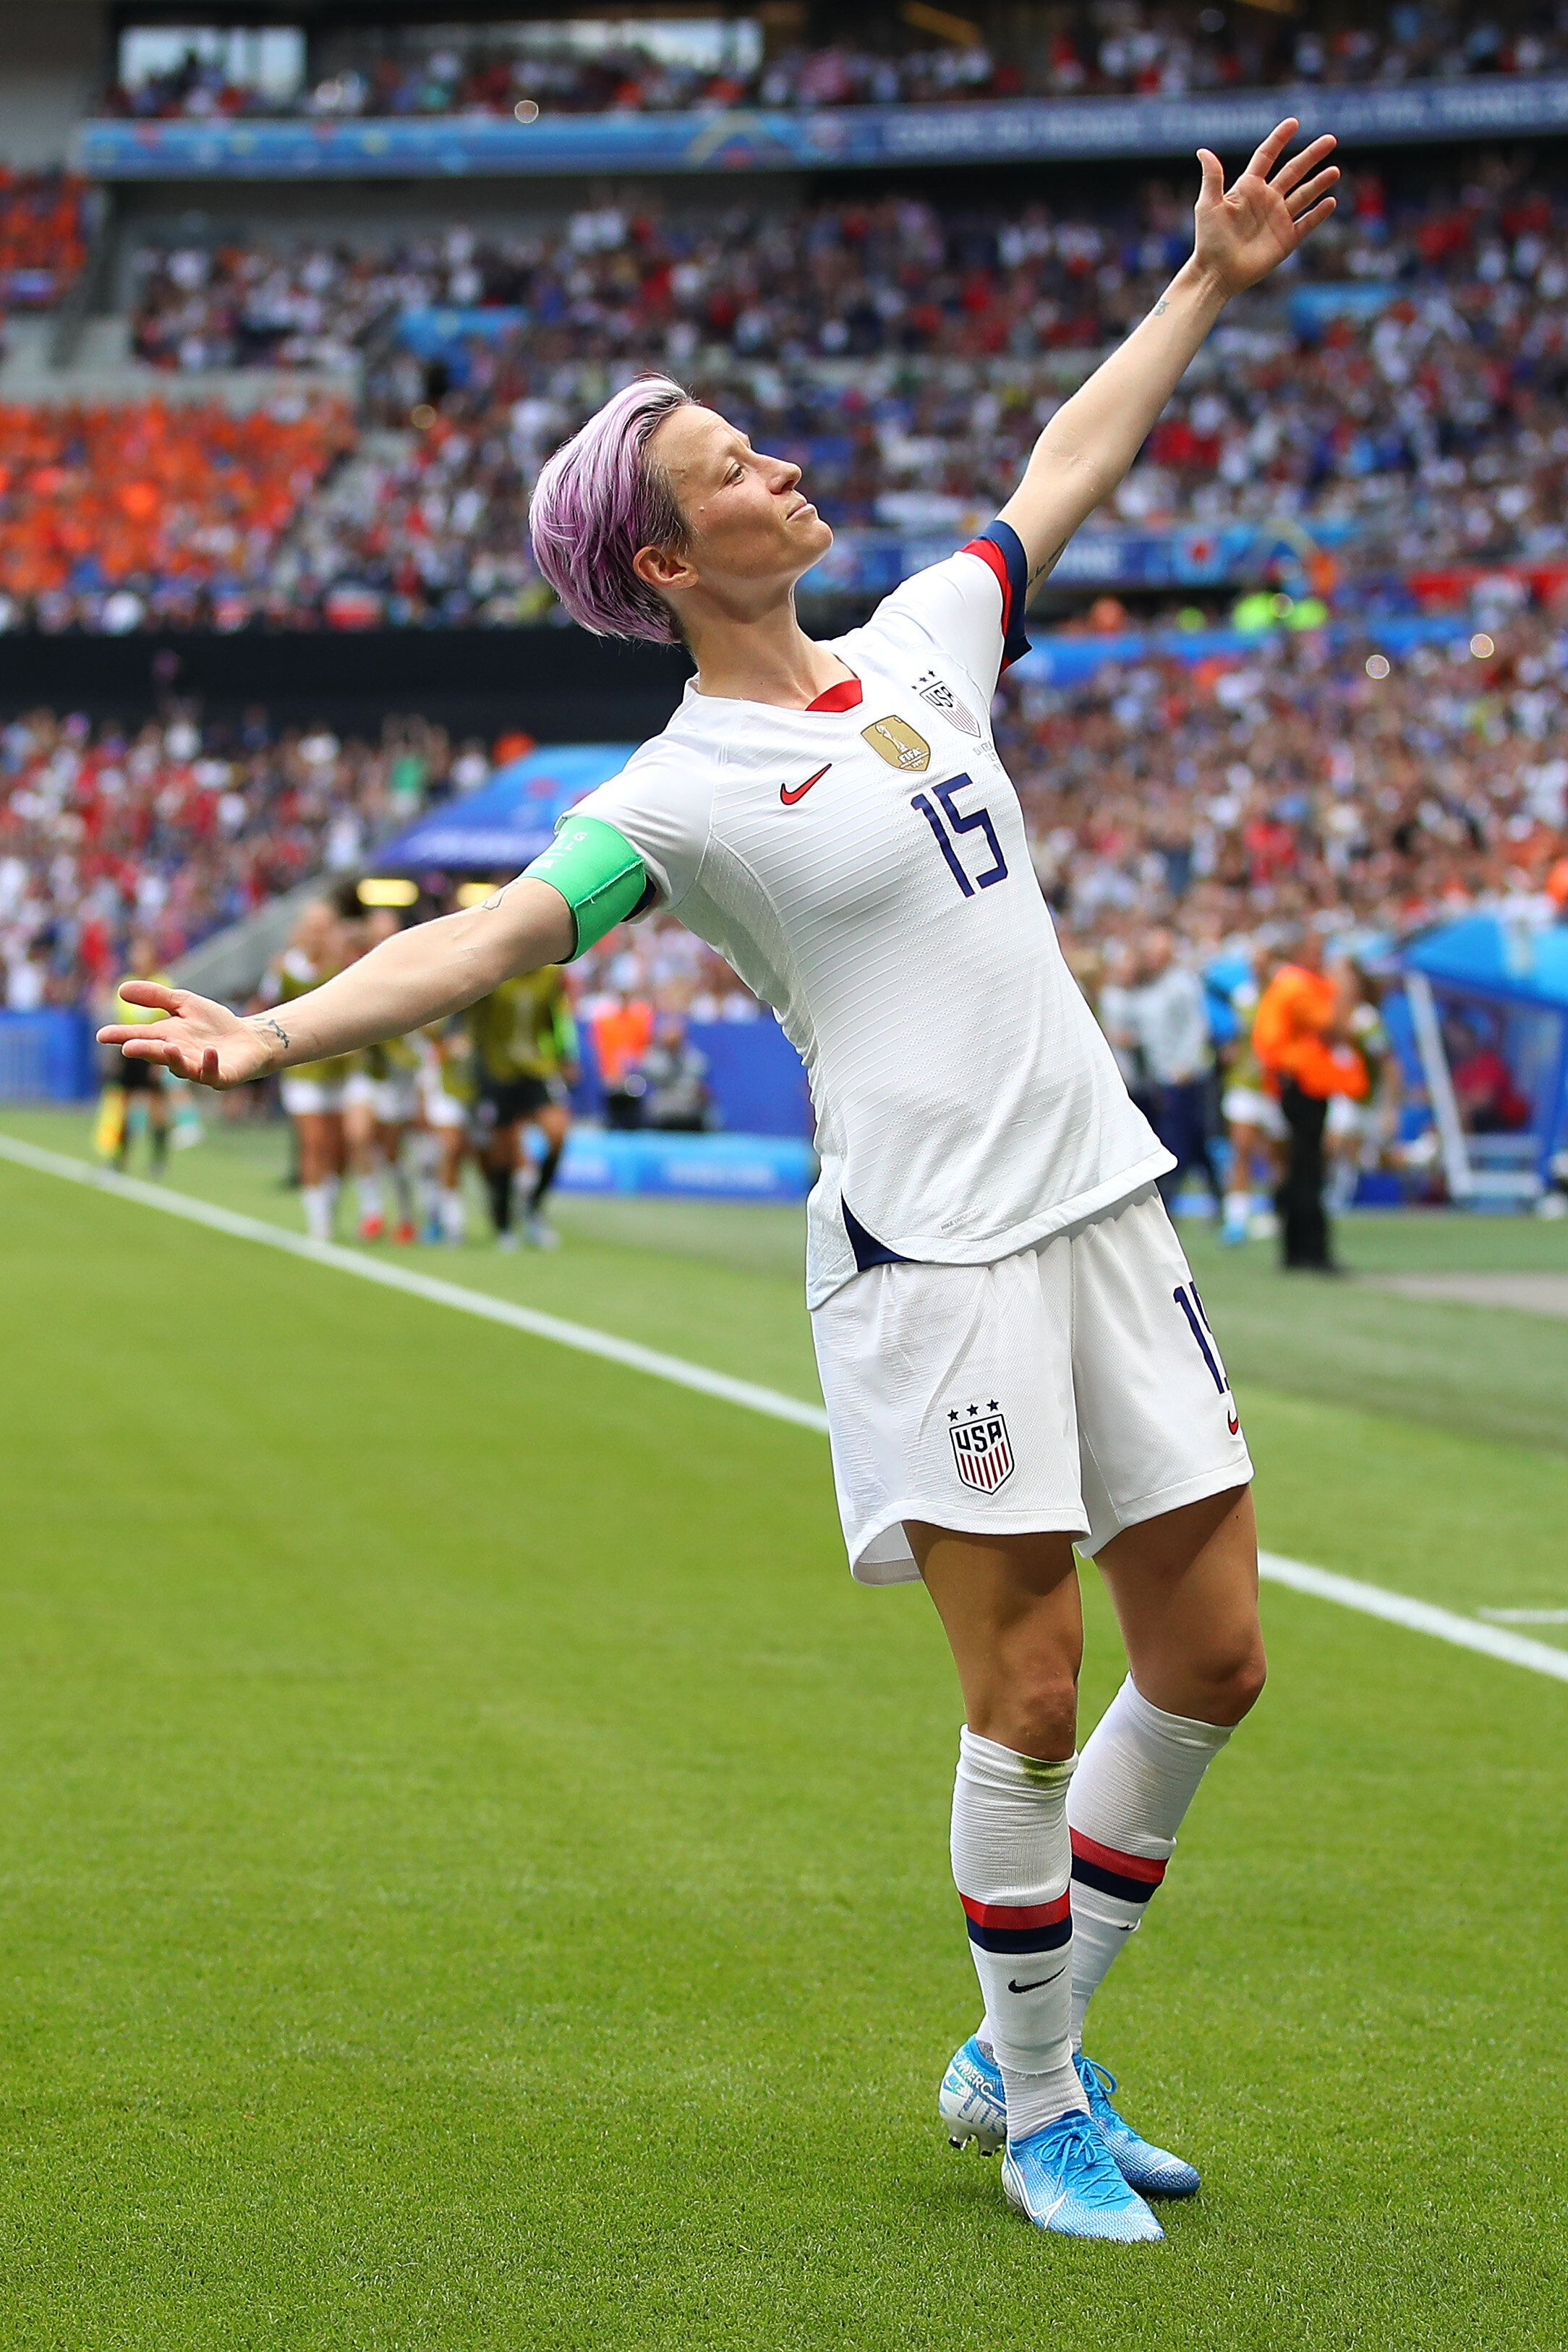 Megan Rapinoe celebrates a goal during the 2019 FIFA Women's World Cup final between the U.S. and the Netherlands.